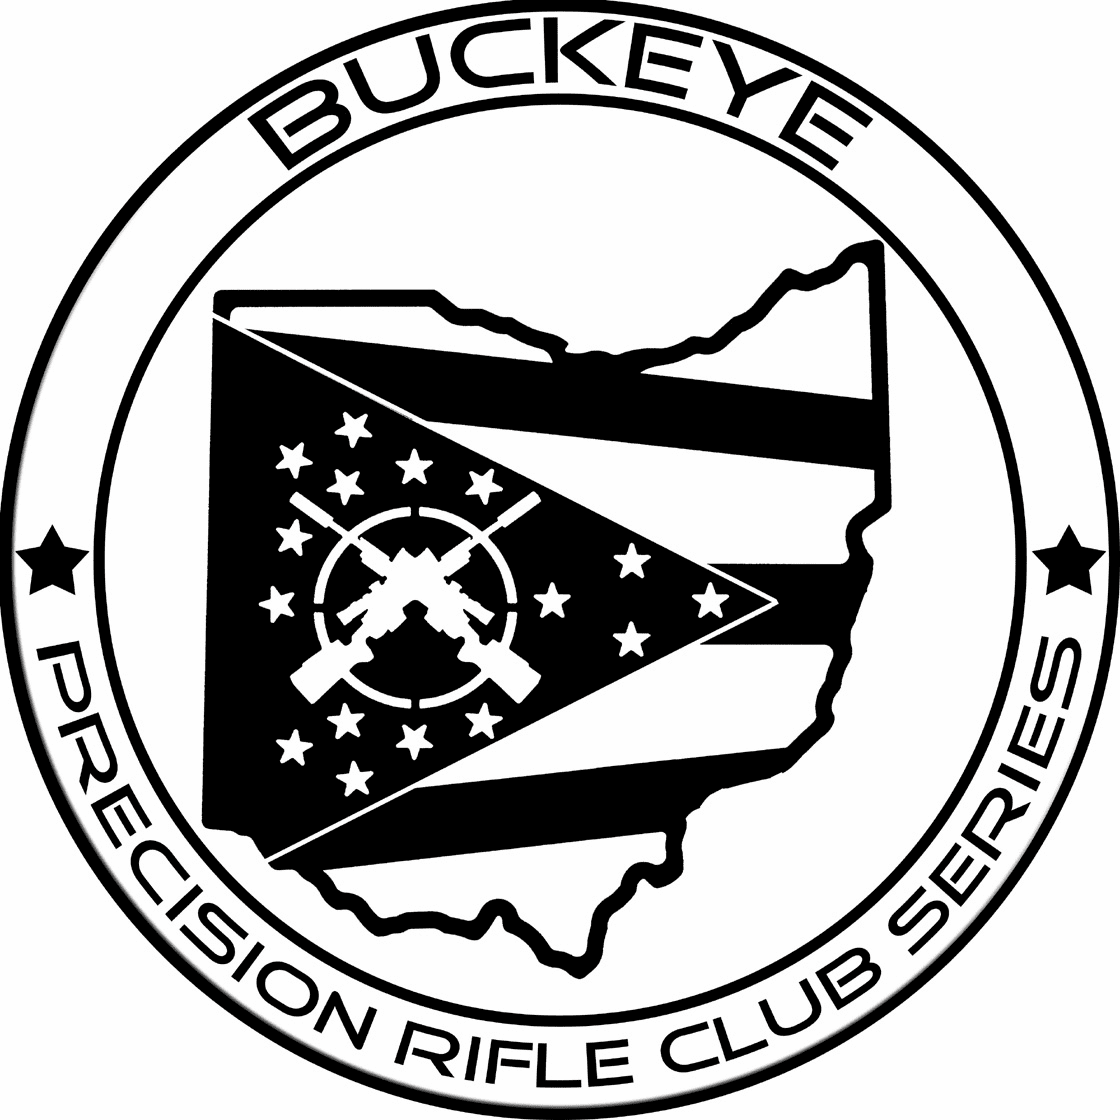 Buckeye Precision Rifle Club